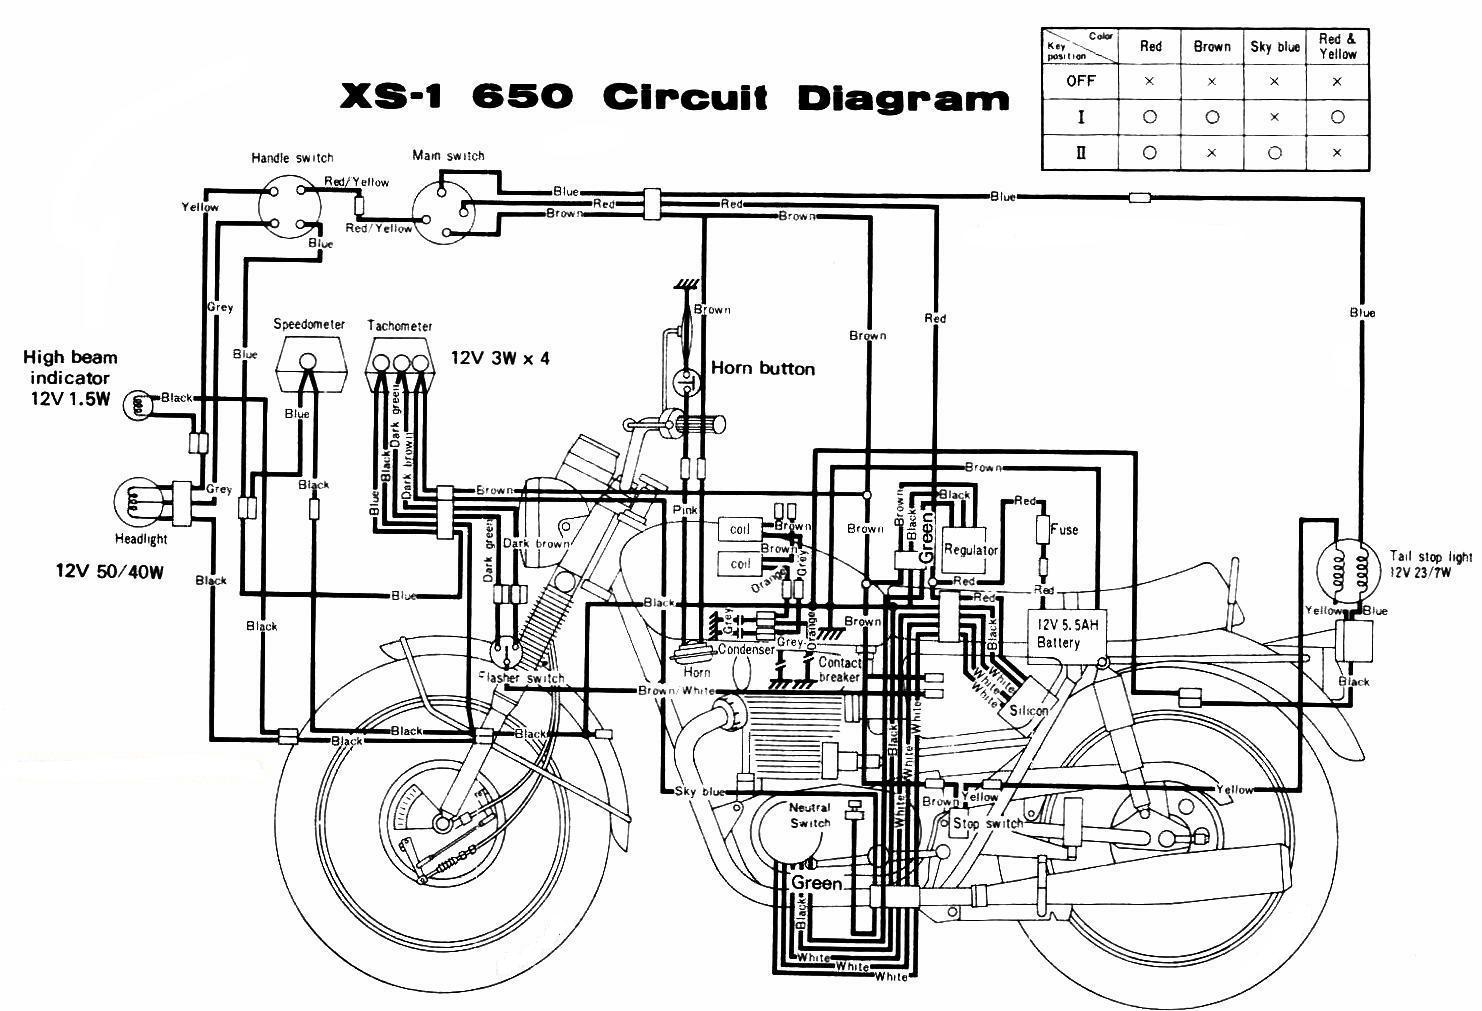 hight resolution of 1970 xs1 page 1 wiring diagrams 1970 xs1 page 1 motorcycle electric starter